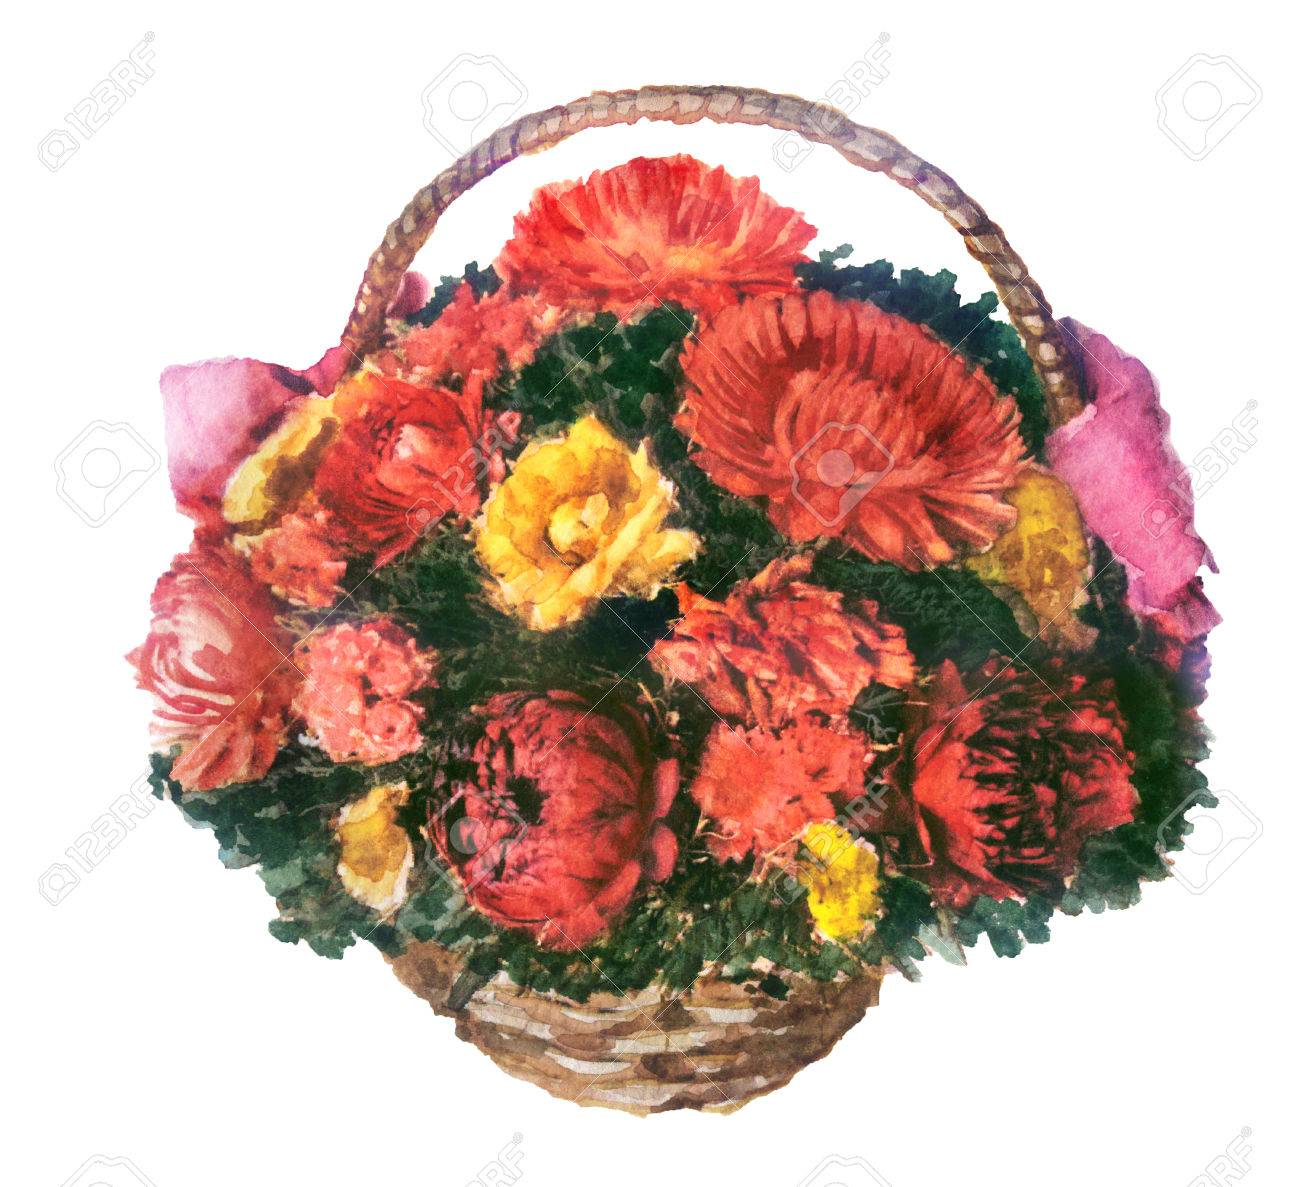 watercolor sketch of flowers in the basket on white background stock